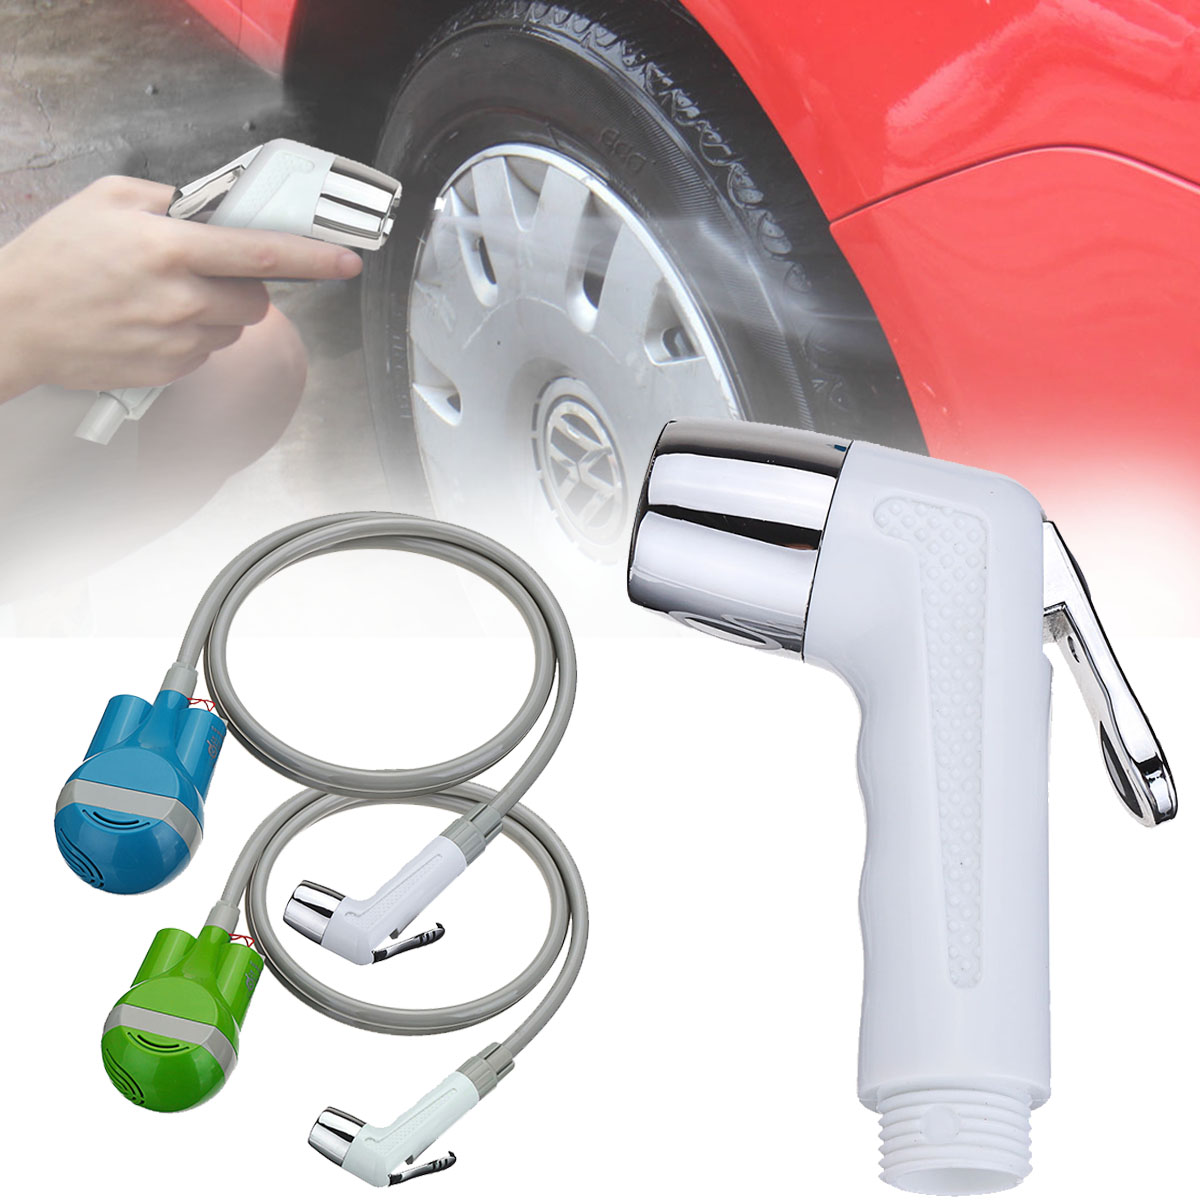 Car Washer Cleaner Washing Sprayer Portable USB Rechargeable Home Bath Outdoor Camping Travel Caravan Van Shower Set Water Pump